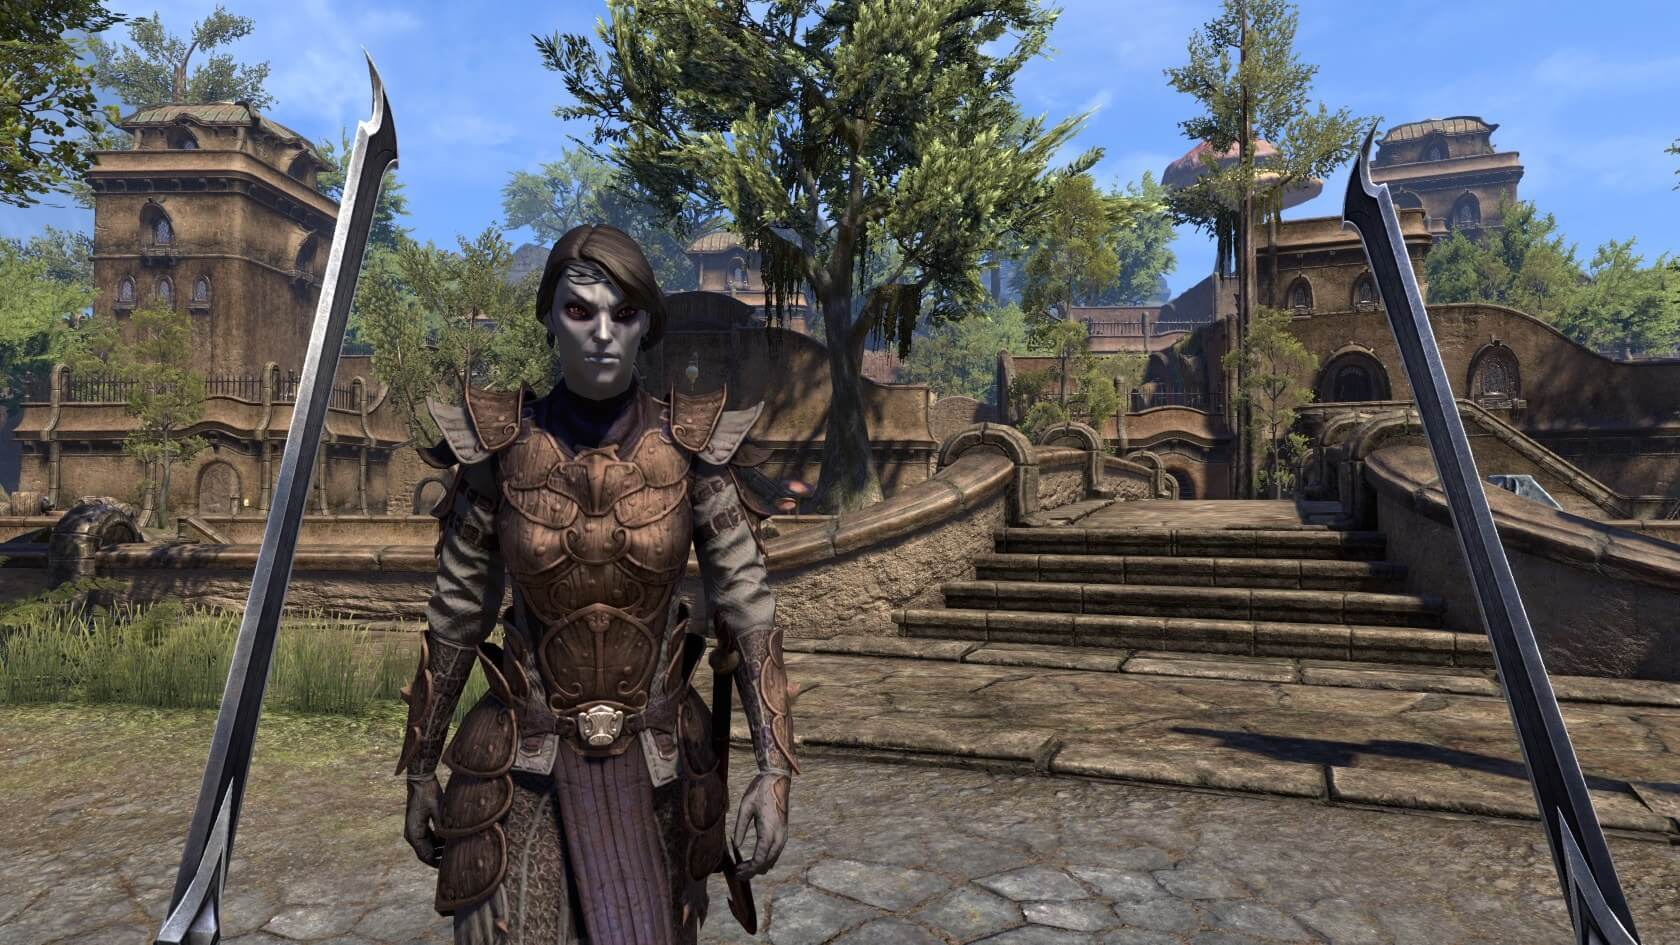 Grab a free copy of Morrowind to celebrate 25 years of The